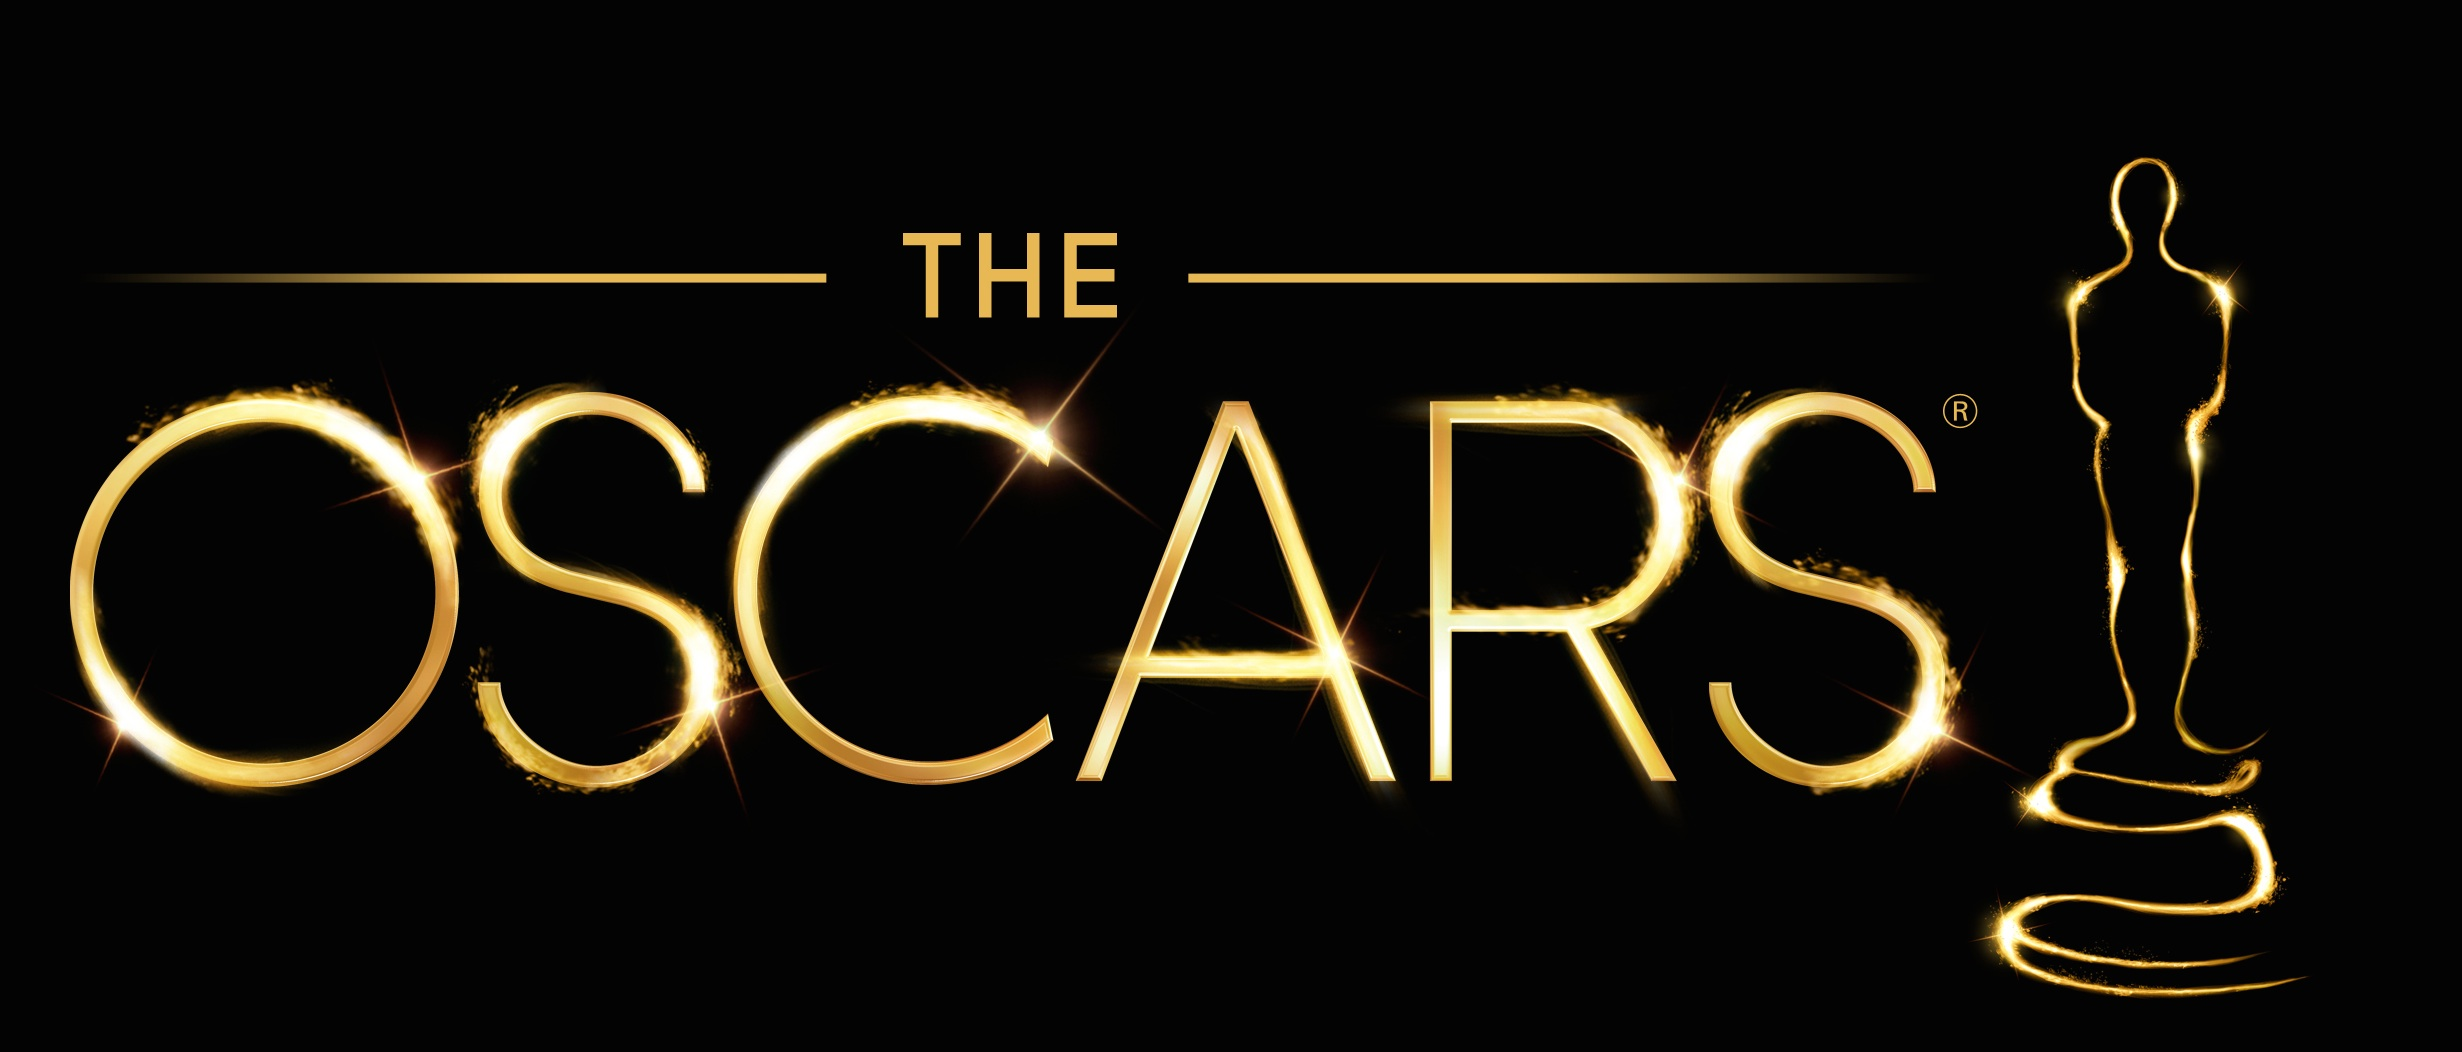 Data, markets, and wisdom of crowds - predicting the Oscars